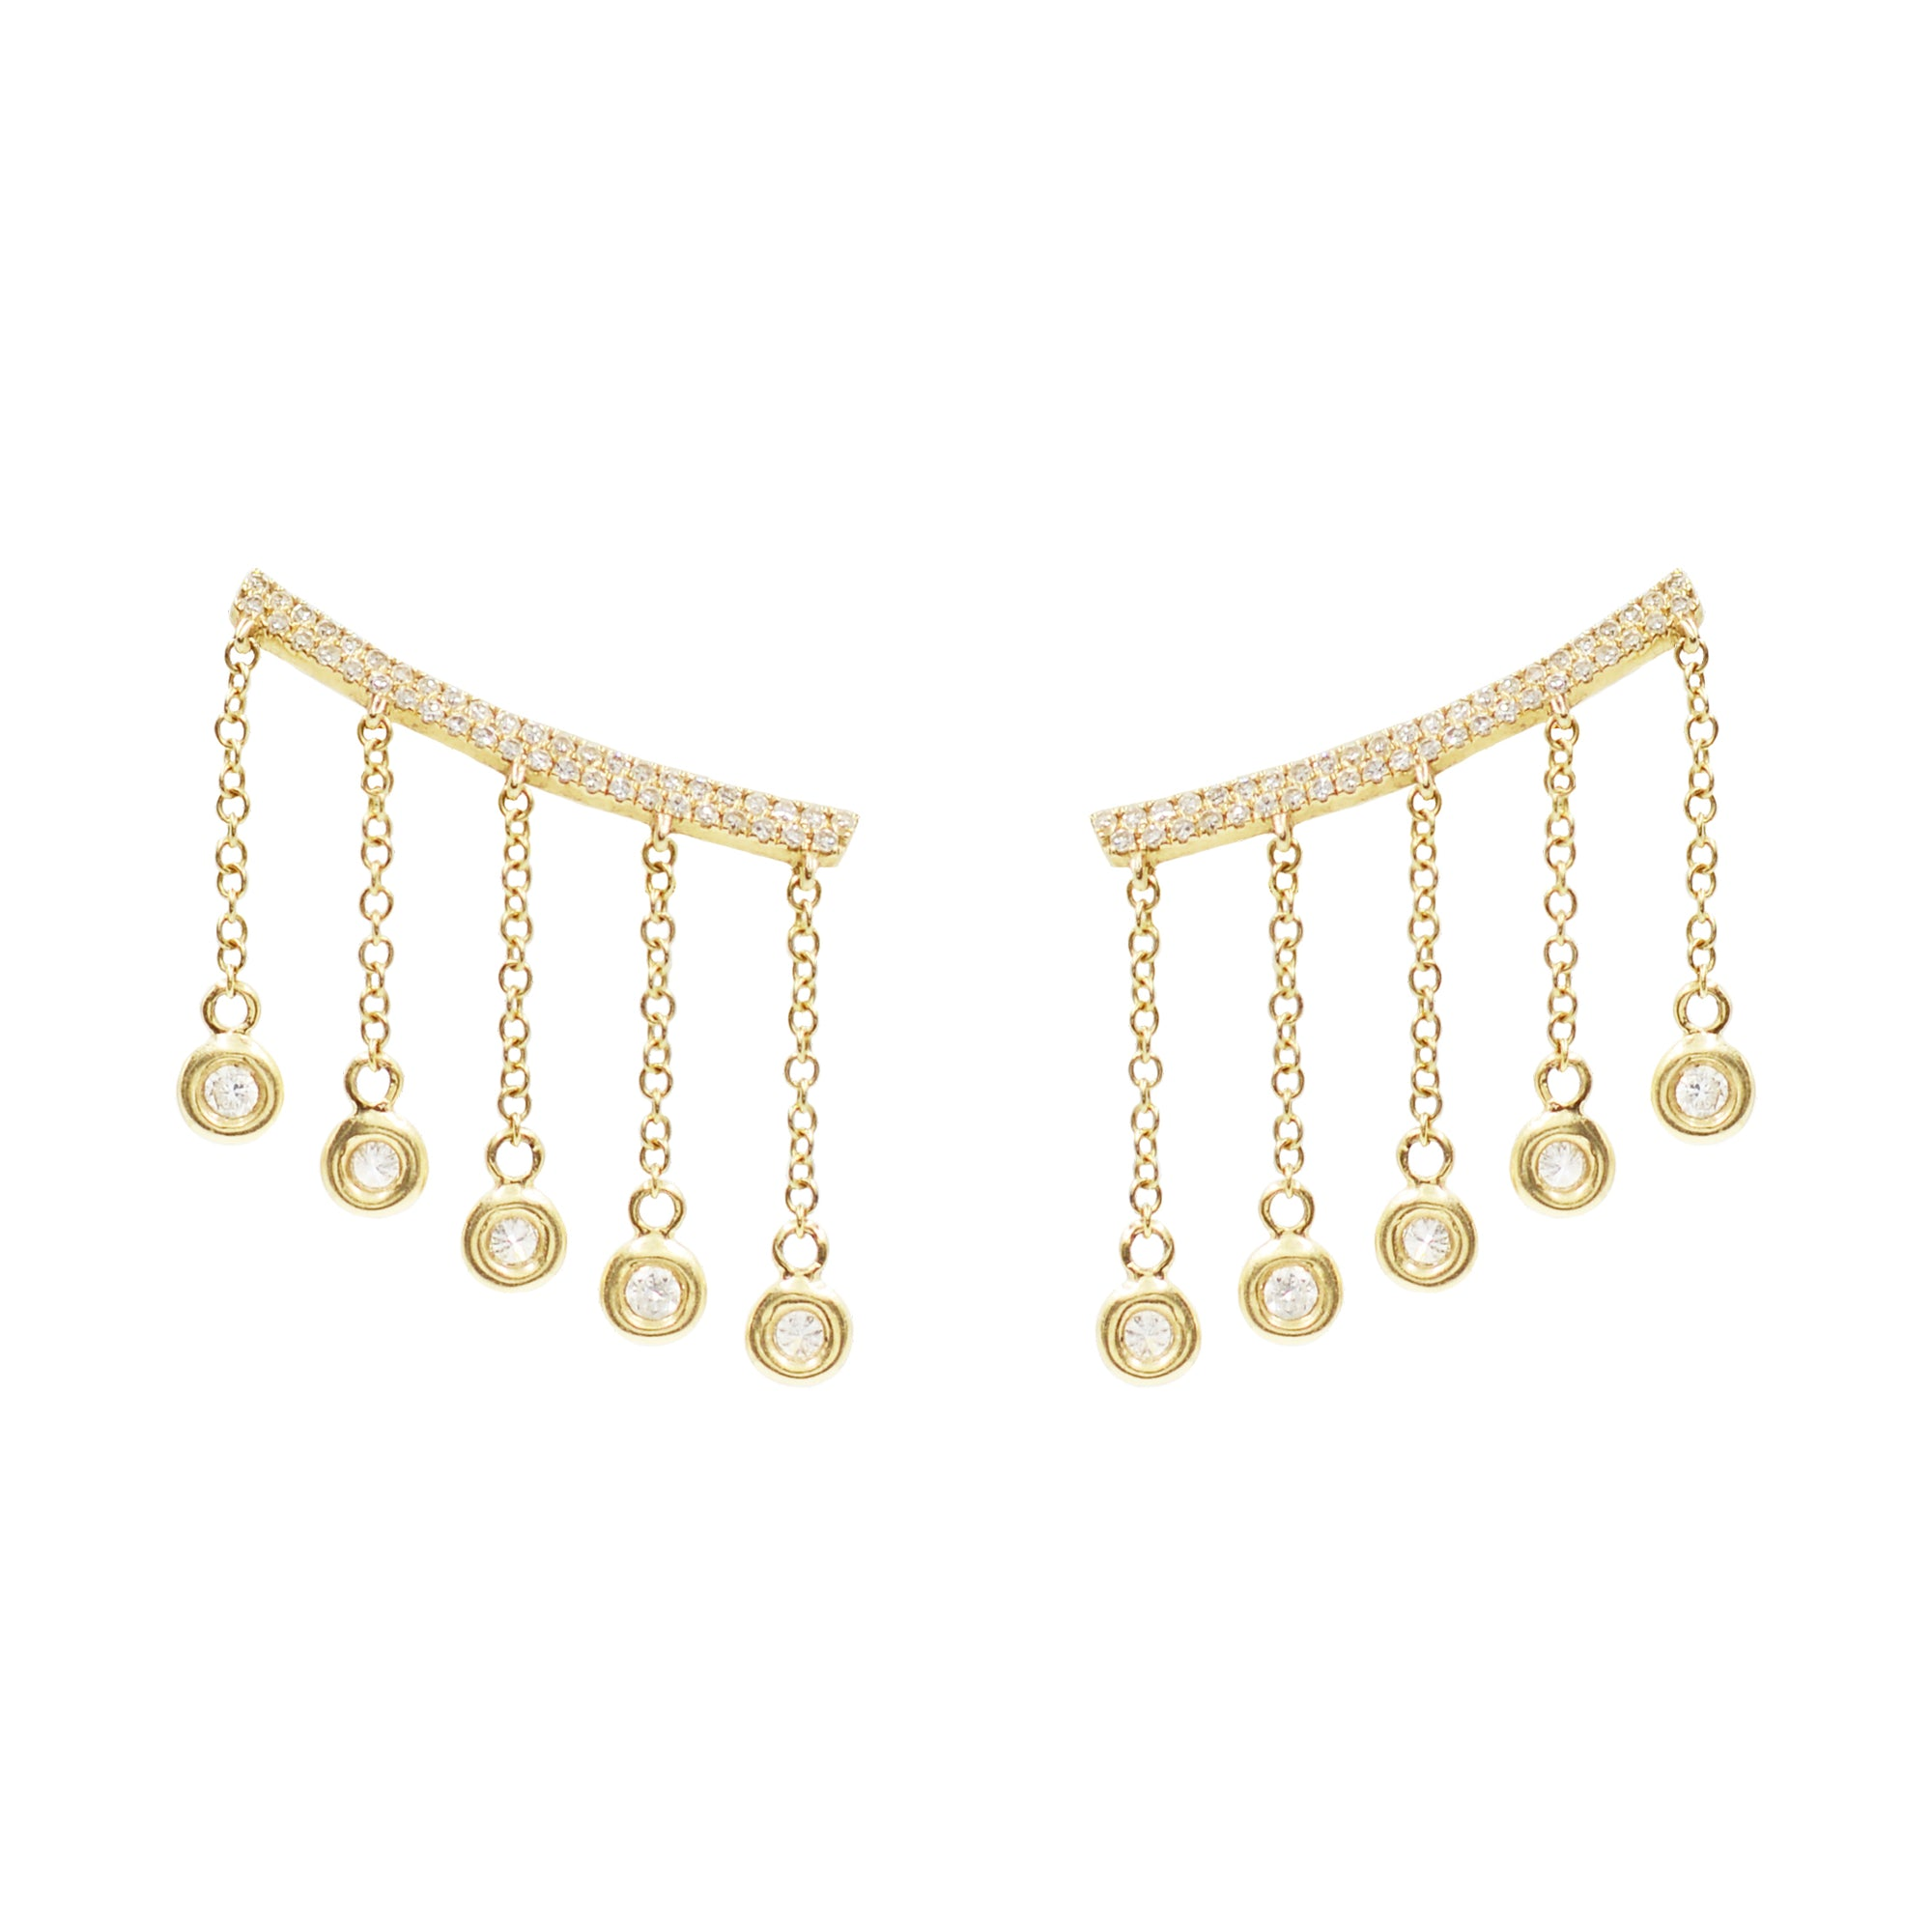 Cleo Ear Crawler Earrings With Crystal Drops in Gold